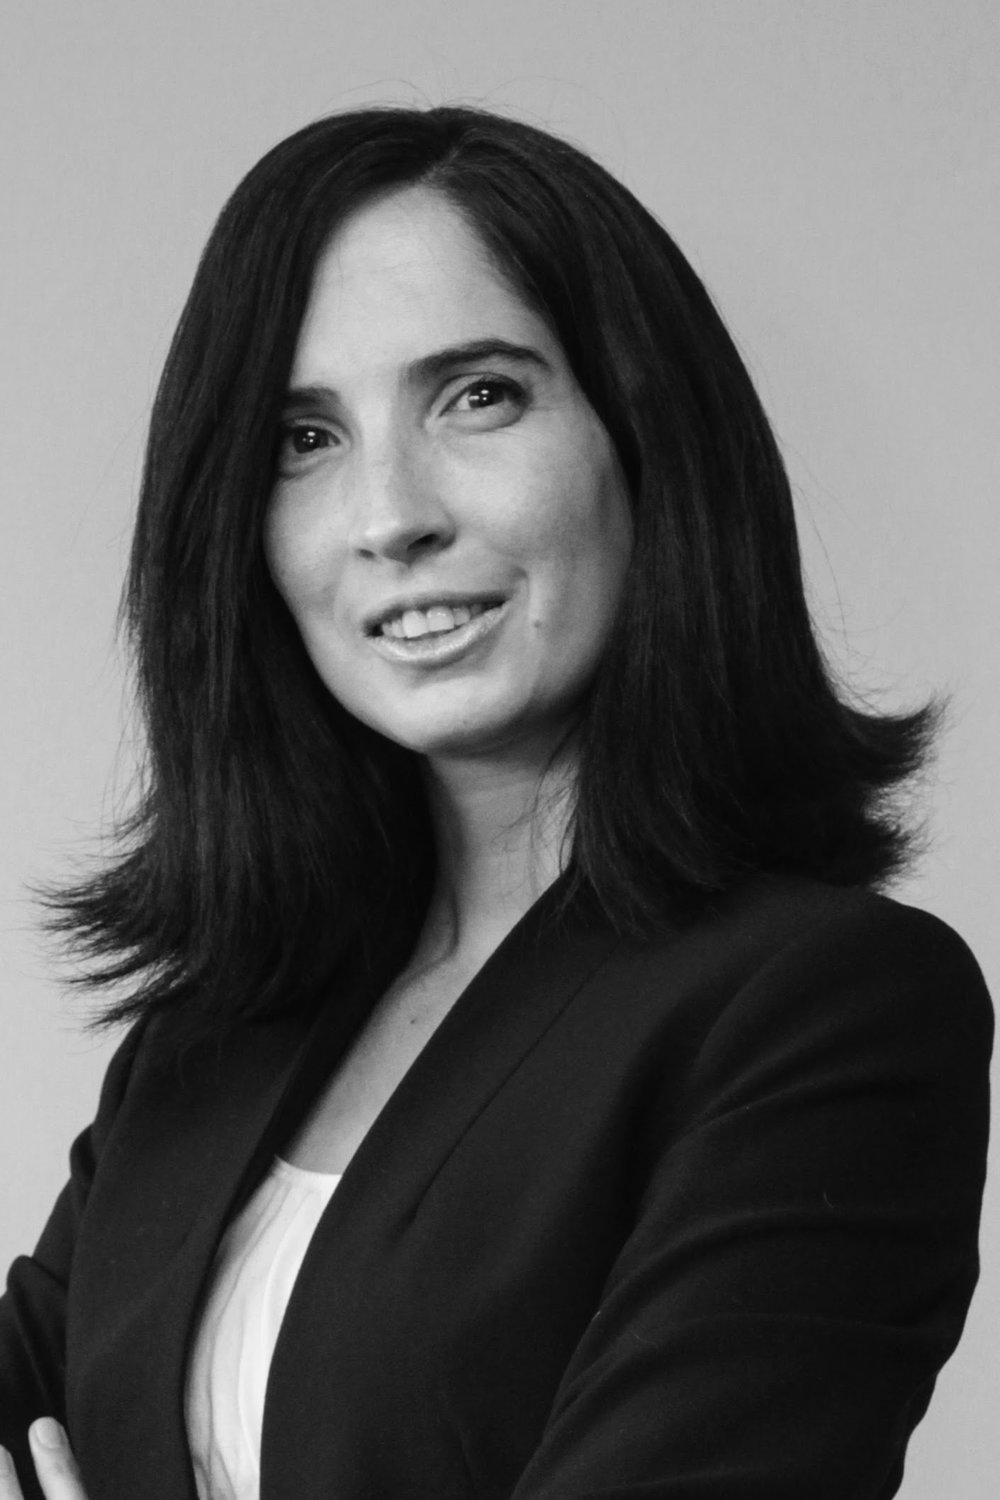 Stephanie Williams - Director of eDiscovery,Licensed (non-practicing) Paralegal in Ontarioswilliams@ellwood.com(416) 410-8191 ext. 515